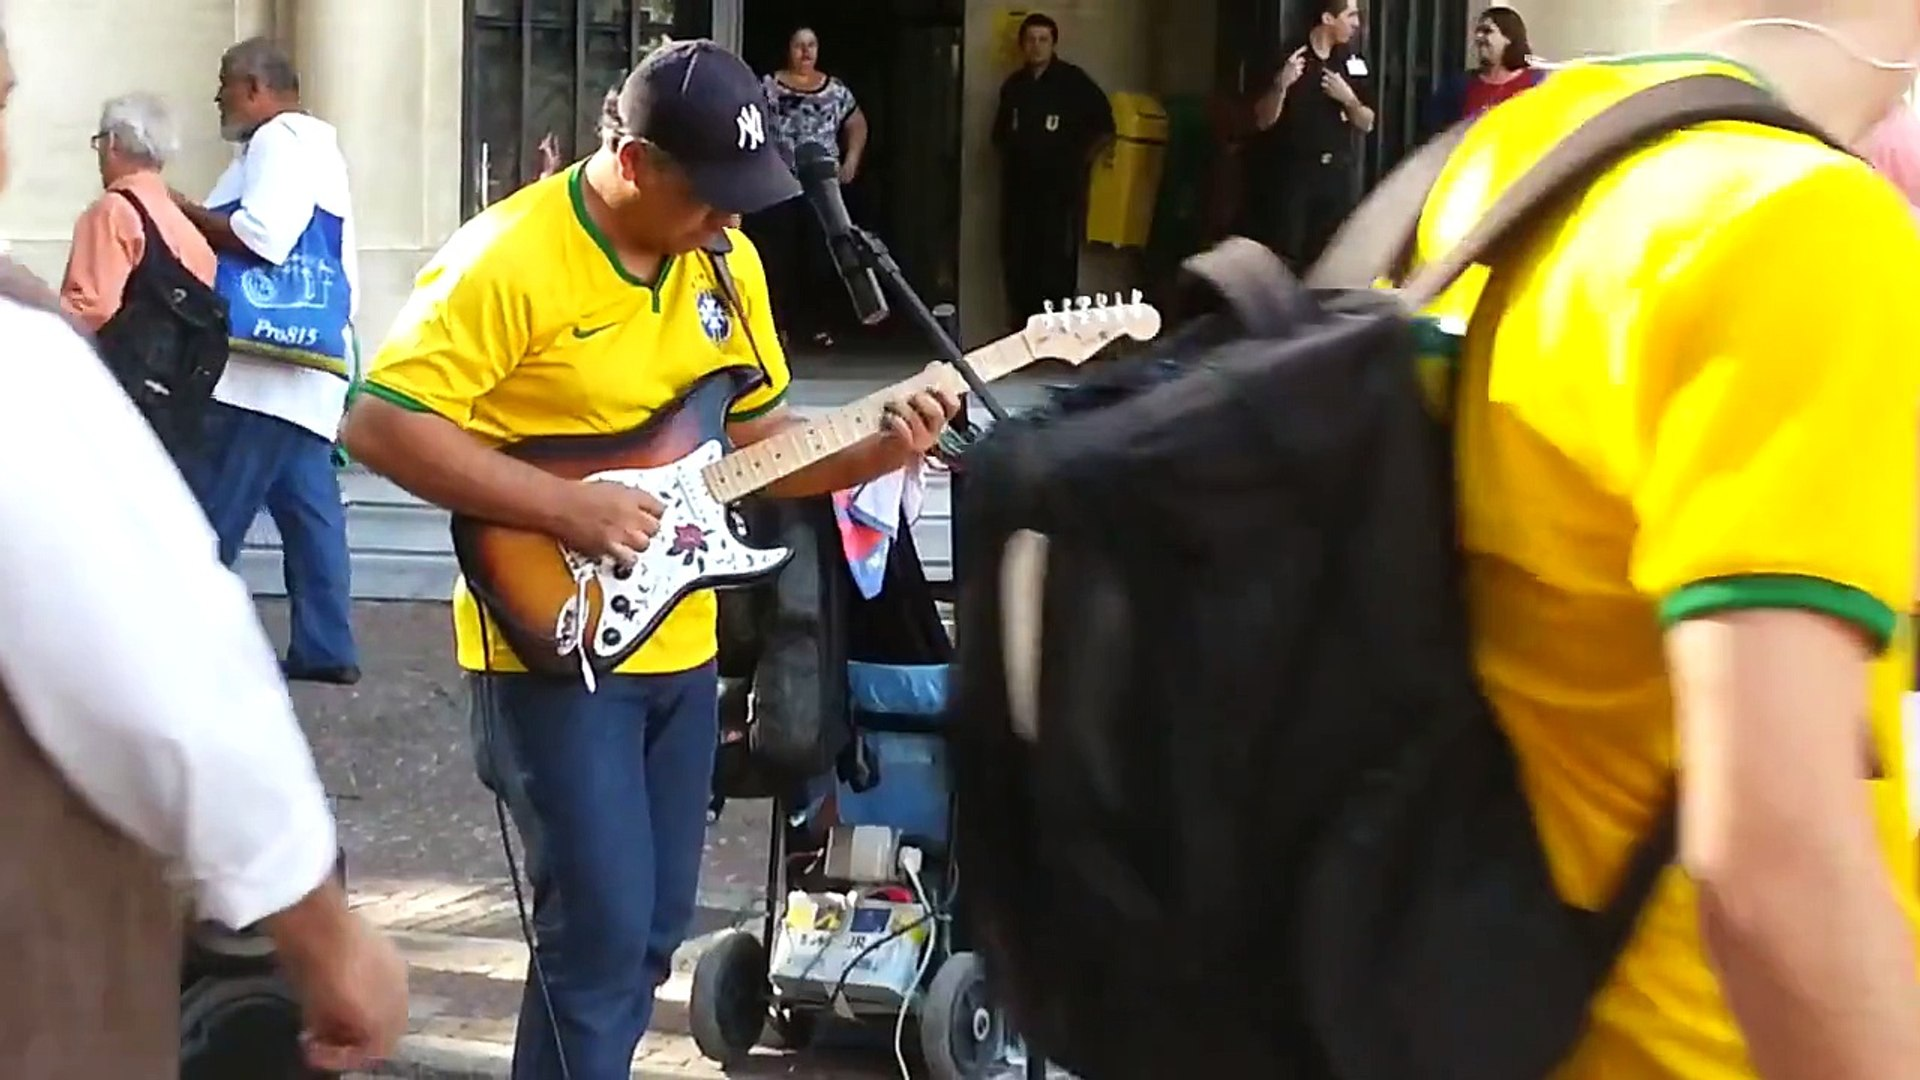 A street musician did a cover of Sultans Of Swing in Brazil